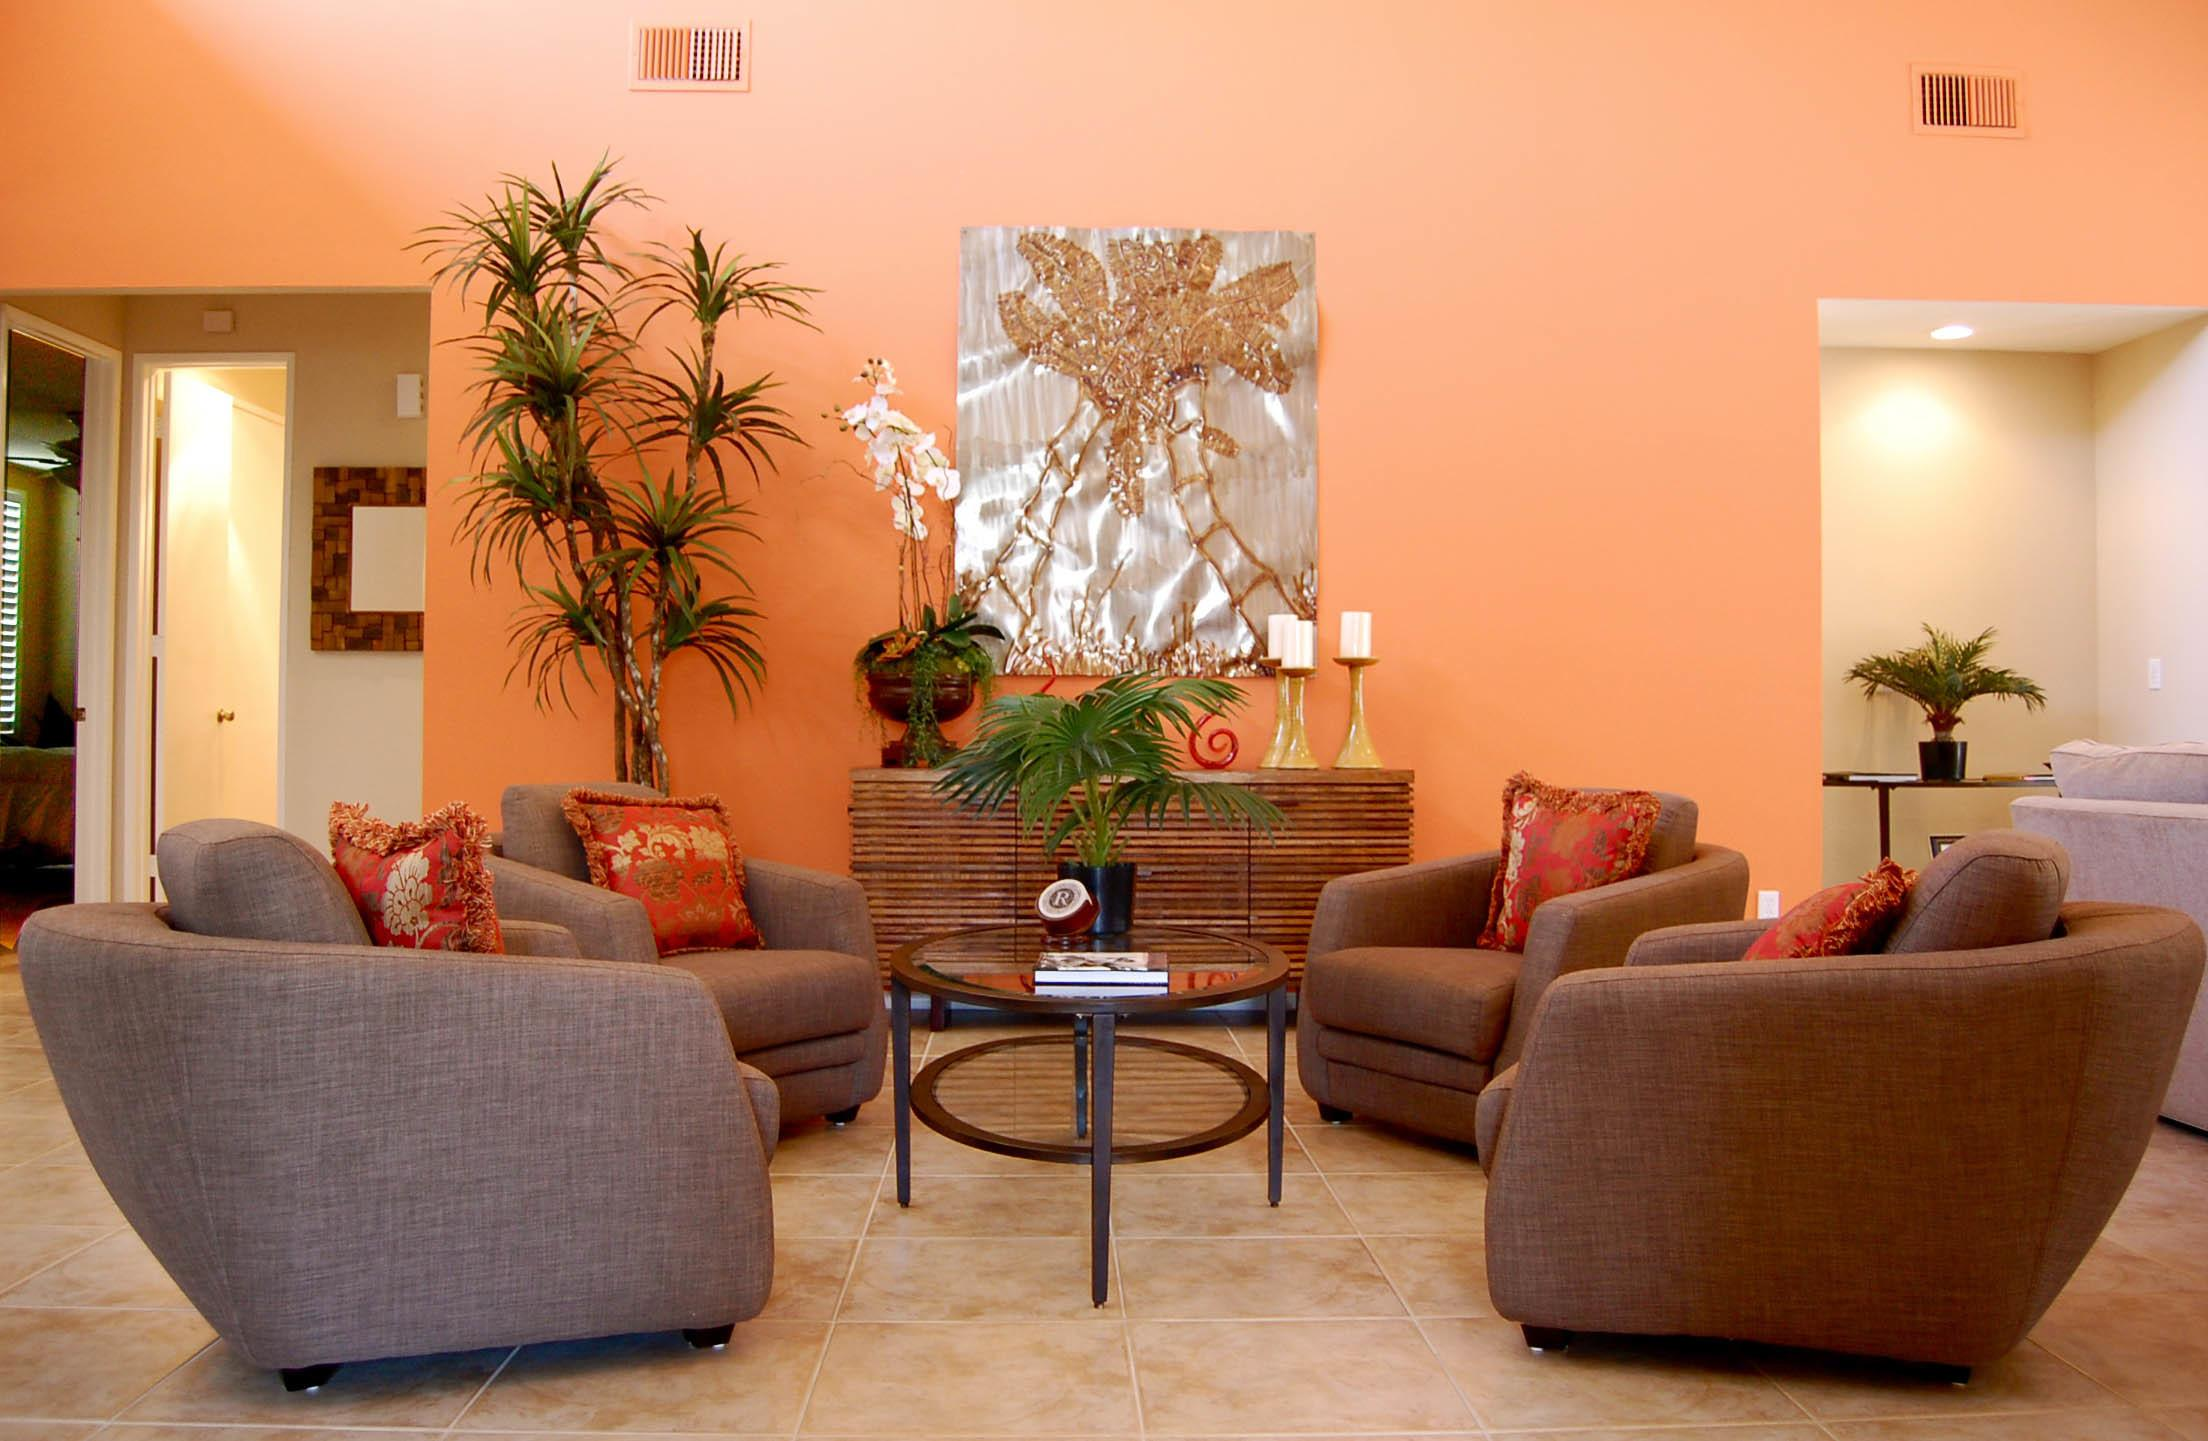 Wonderful Orange Room Design Ideas You Have Ever Seen (Photo